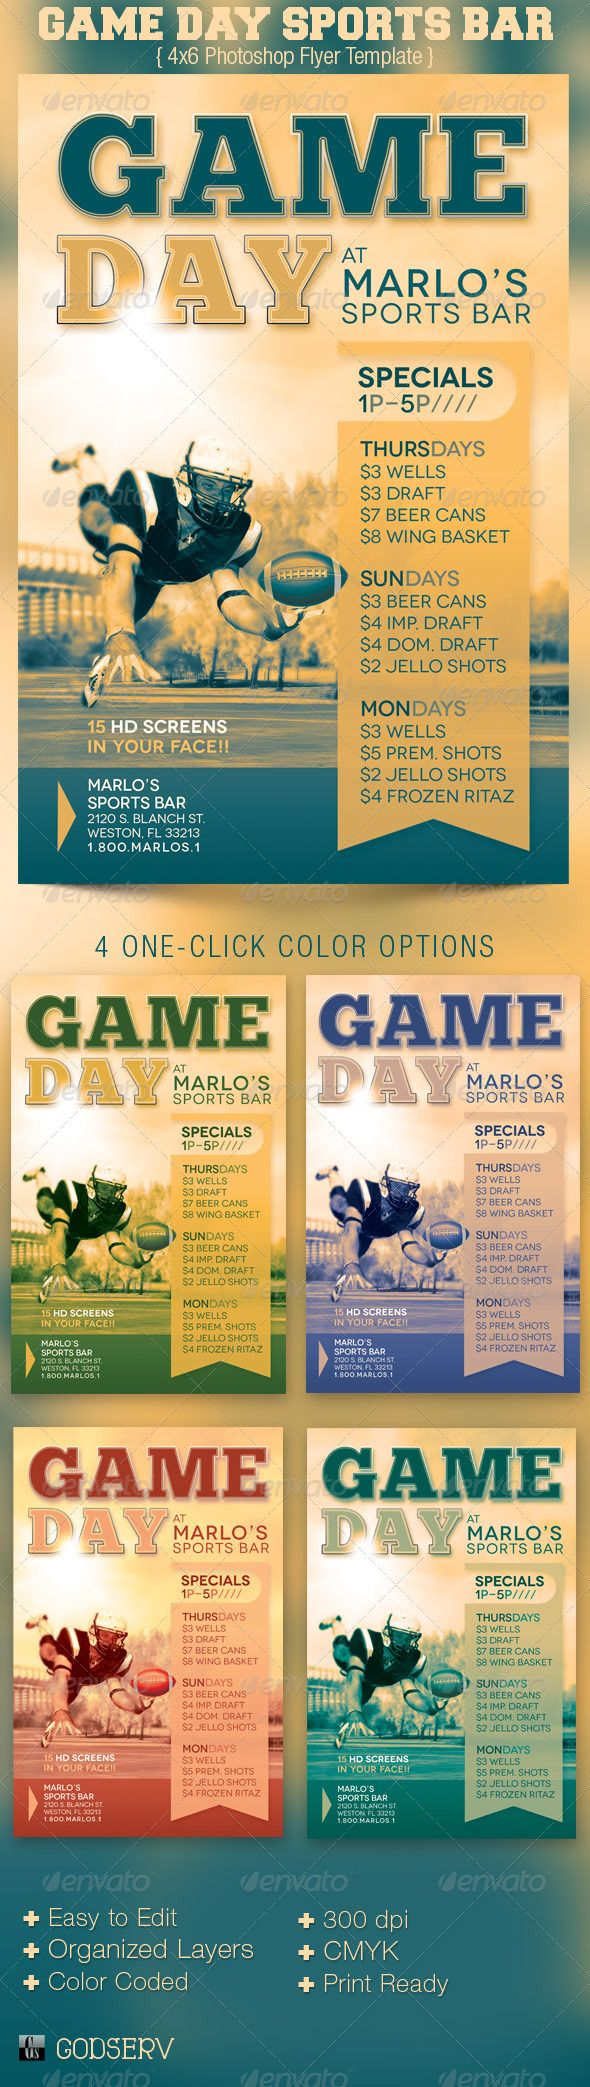 Game Day Sports Bar Flyer Template  Sports Bars Flyer Template